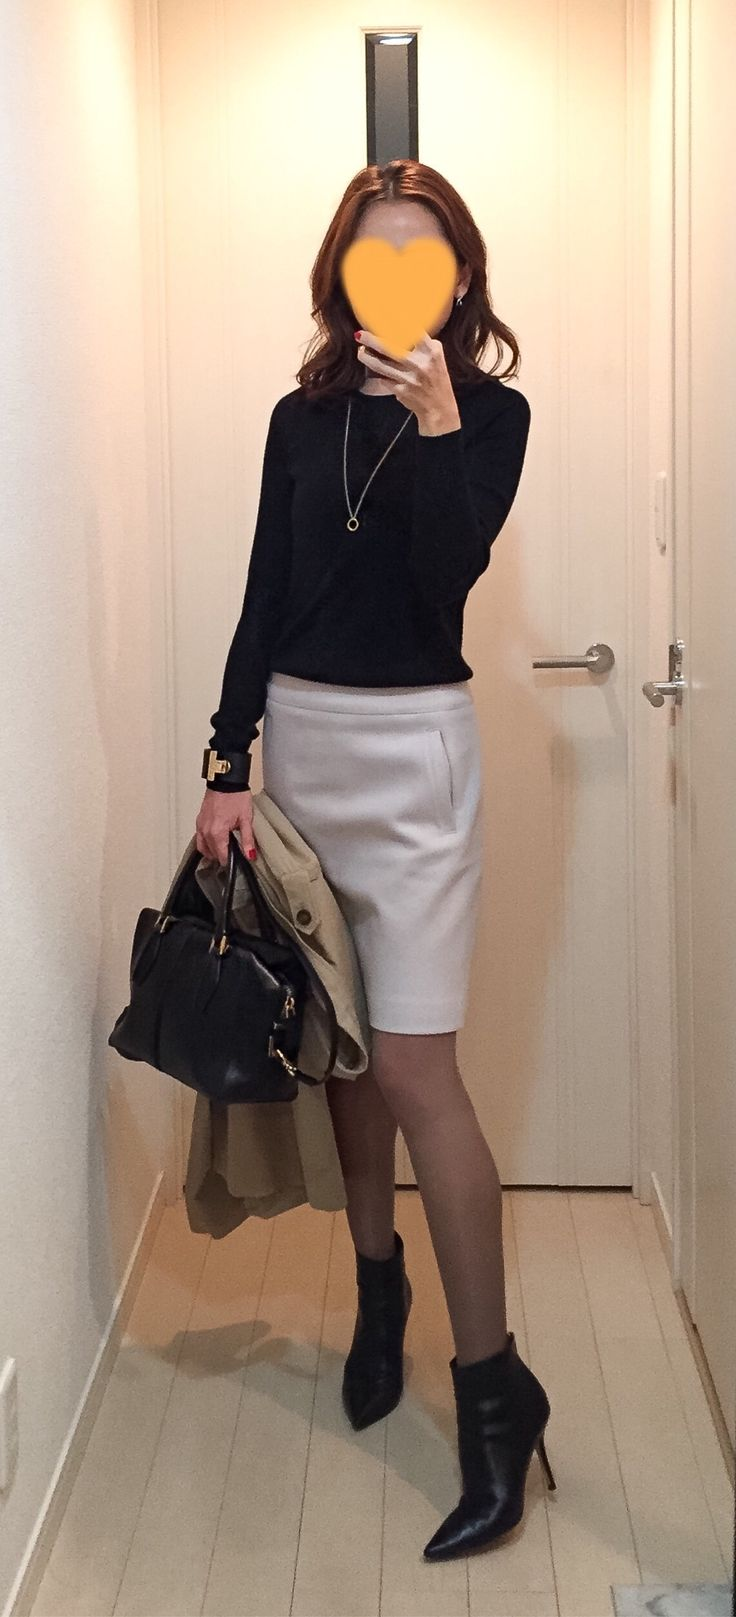 Black knit: Drawer, Light grey skirt: Ballsey, Bag: Tod's, Boots: Jimmy Choo